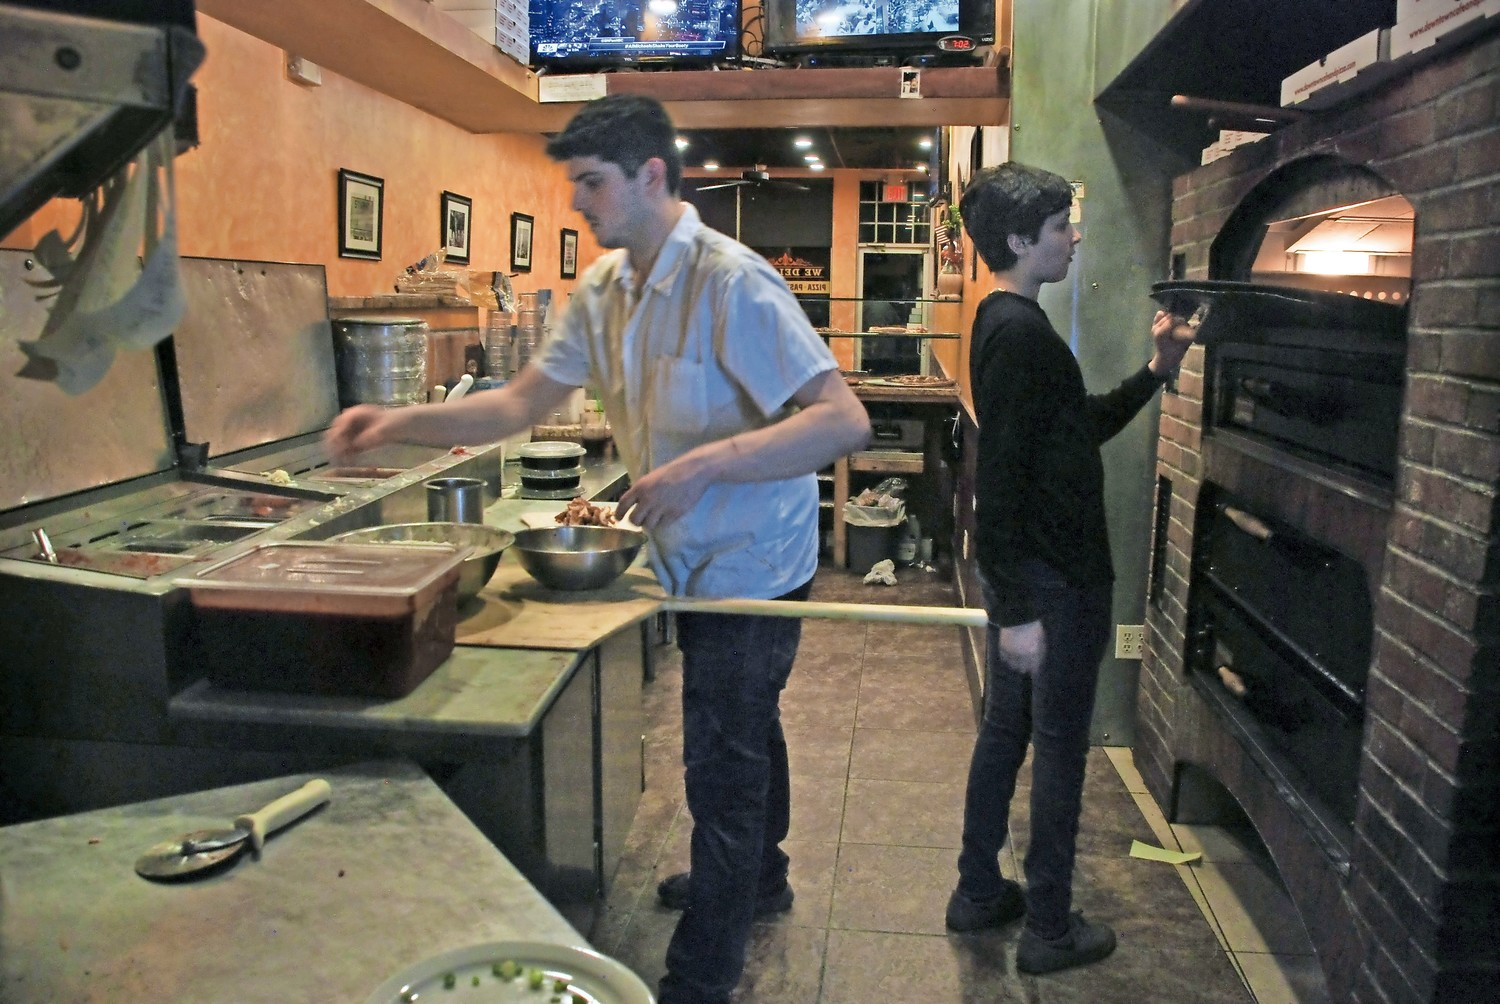 Downtown's chefs cranked out brick-oven pizzas for hungry game day customers.